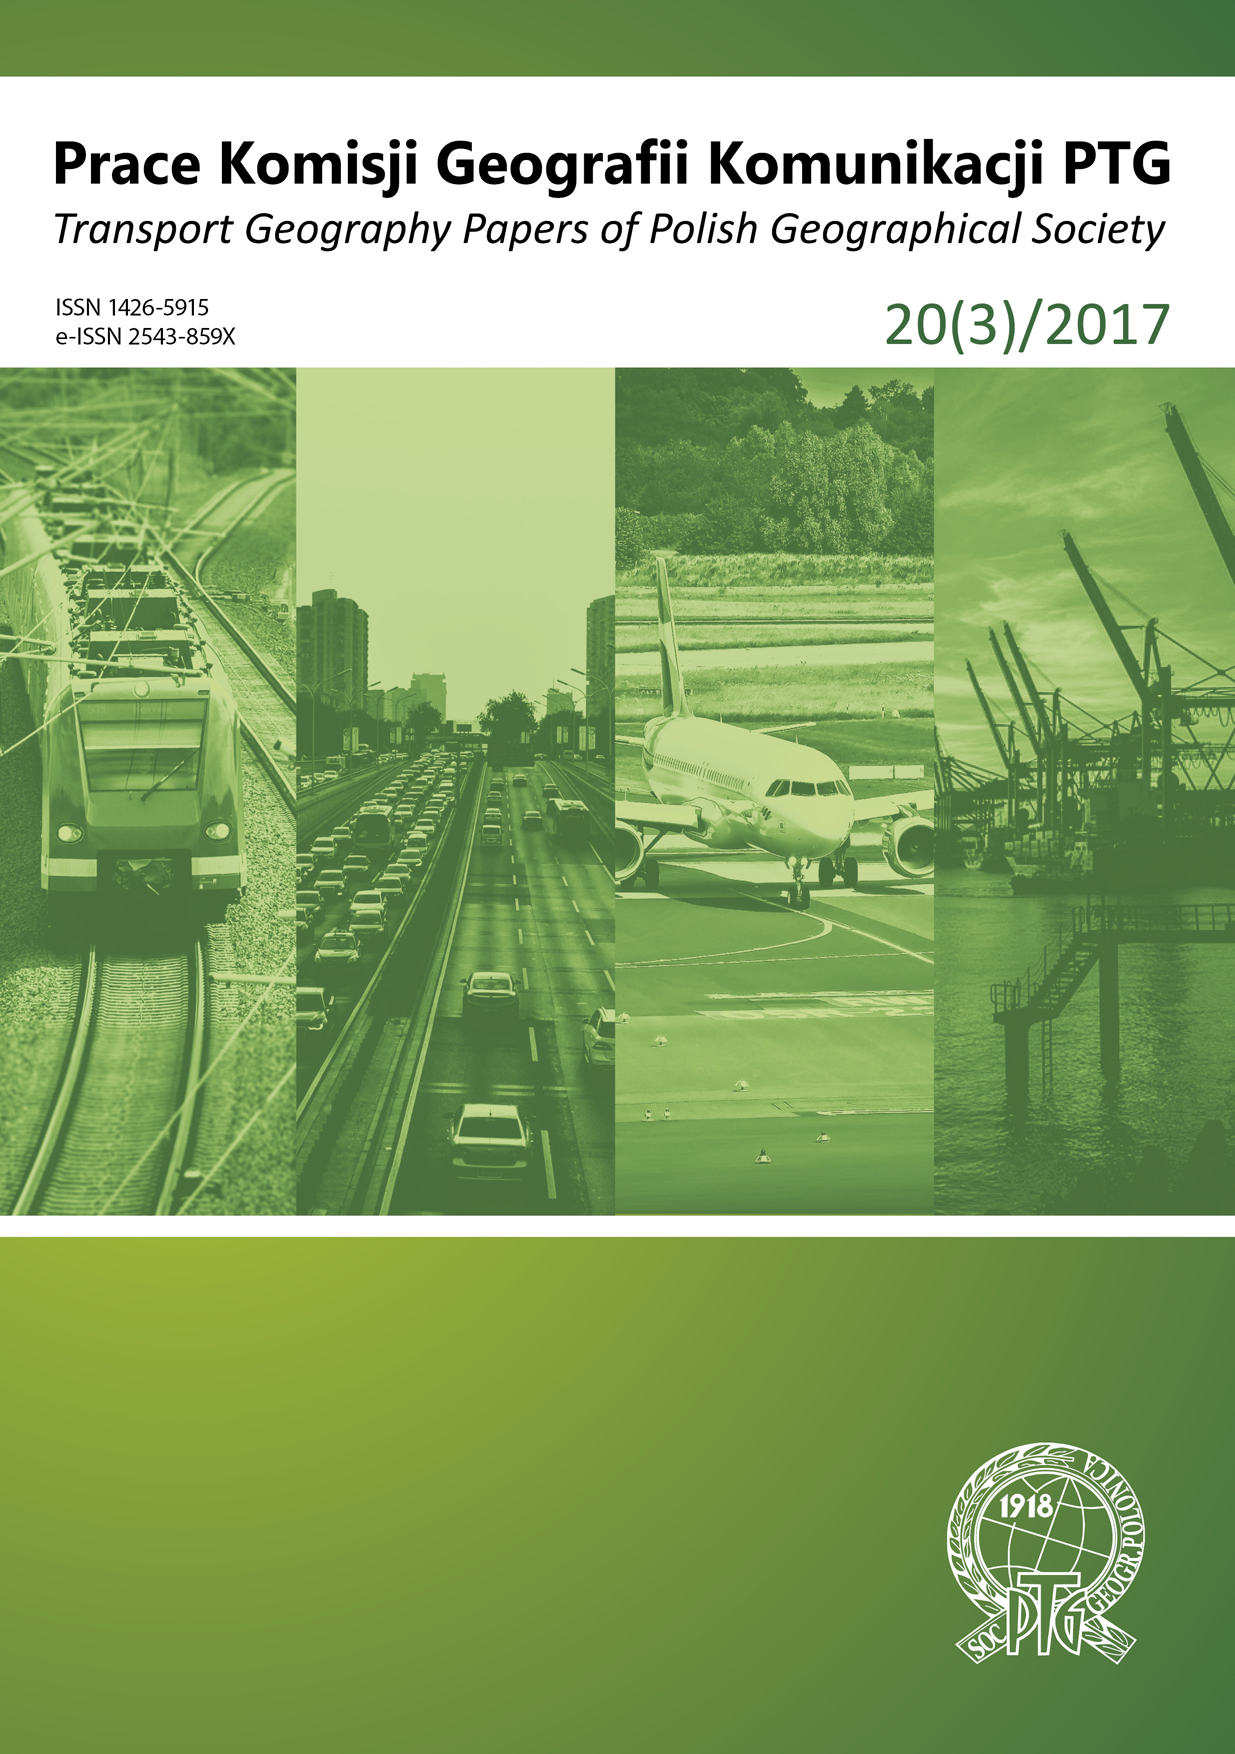 Perspectives of using railway in communication services of northern districts of Gdynia Cover Image